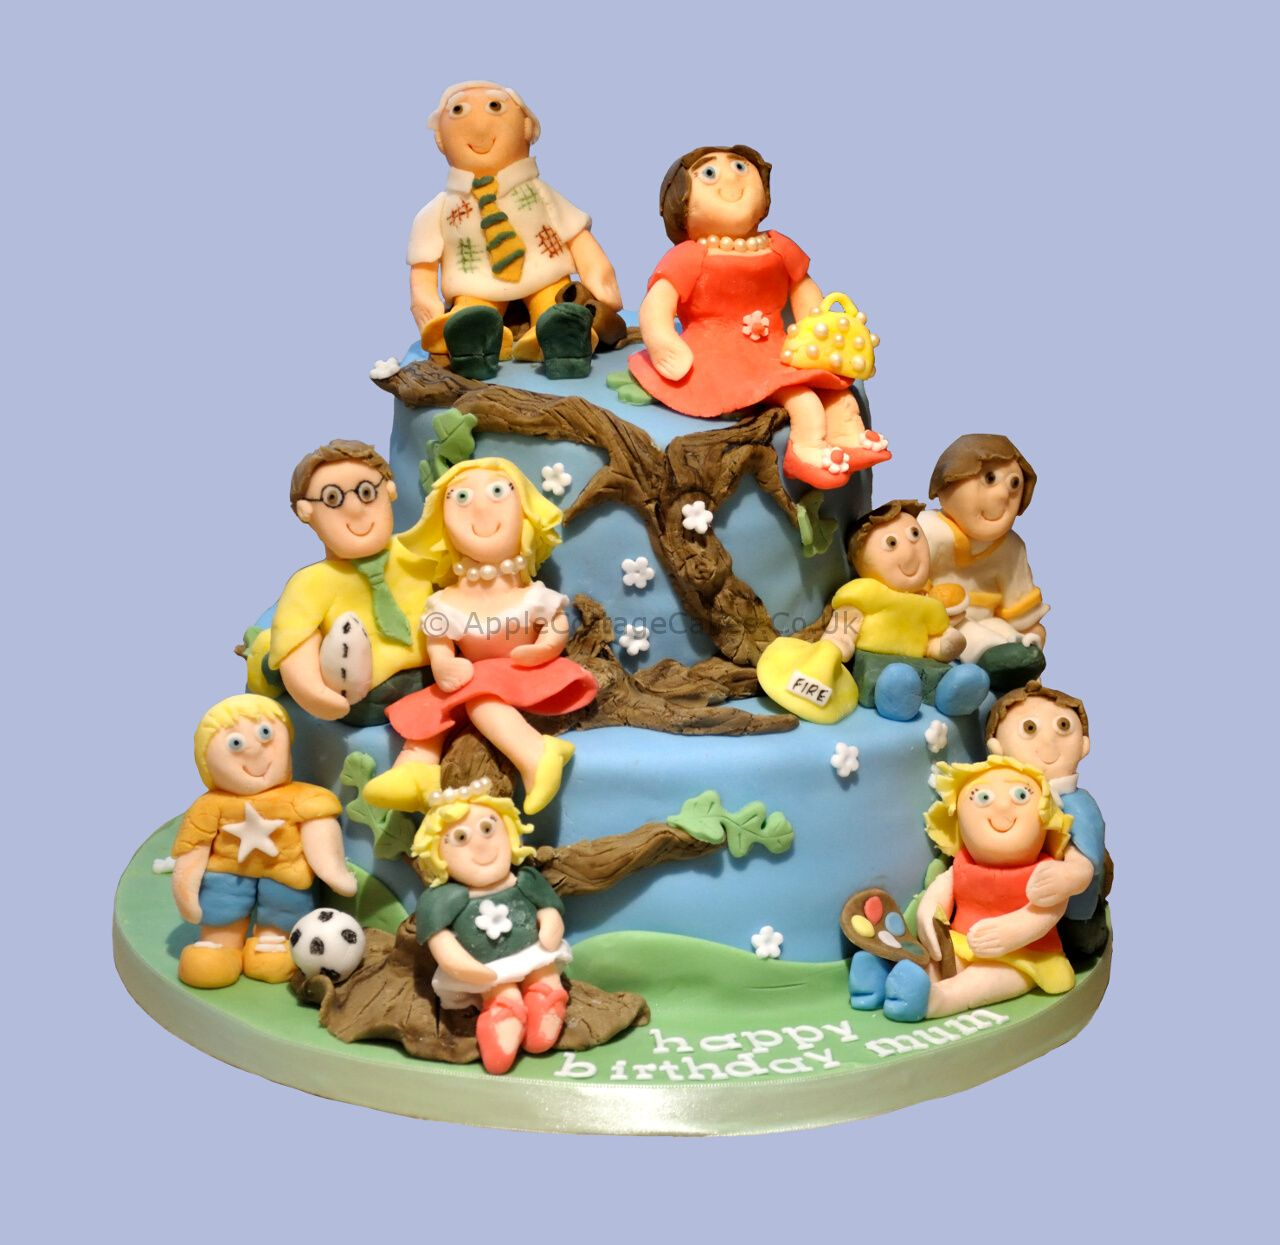 Family Portrait Th Birthday Cake For A Special Grandad And Dad - Family birthday cake ideas